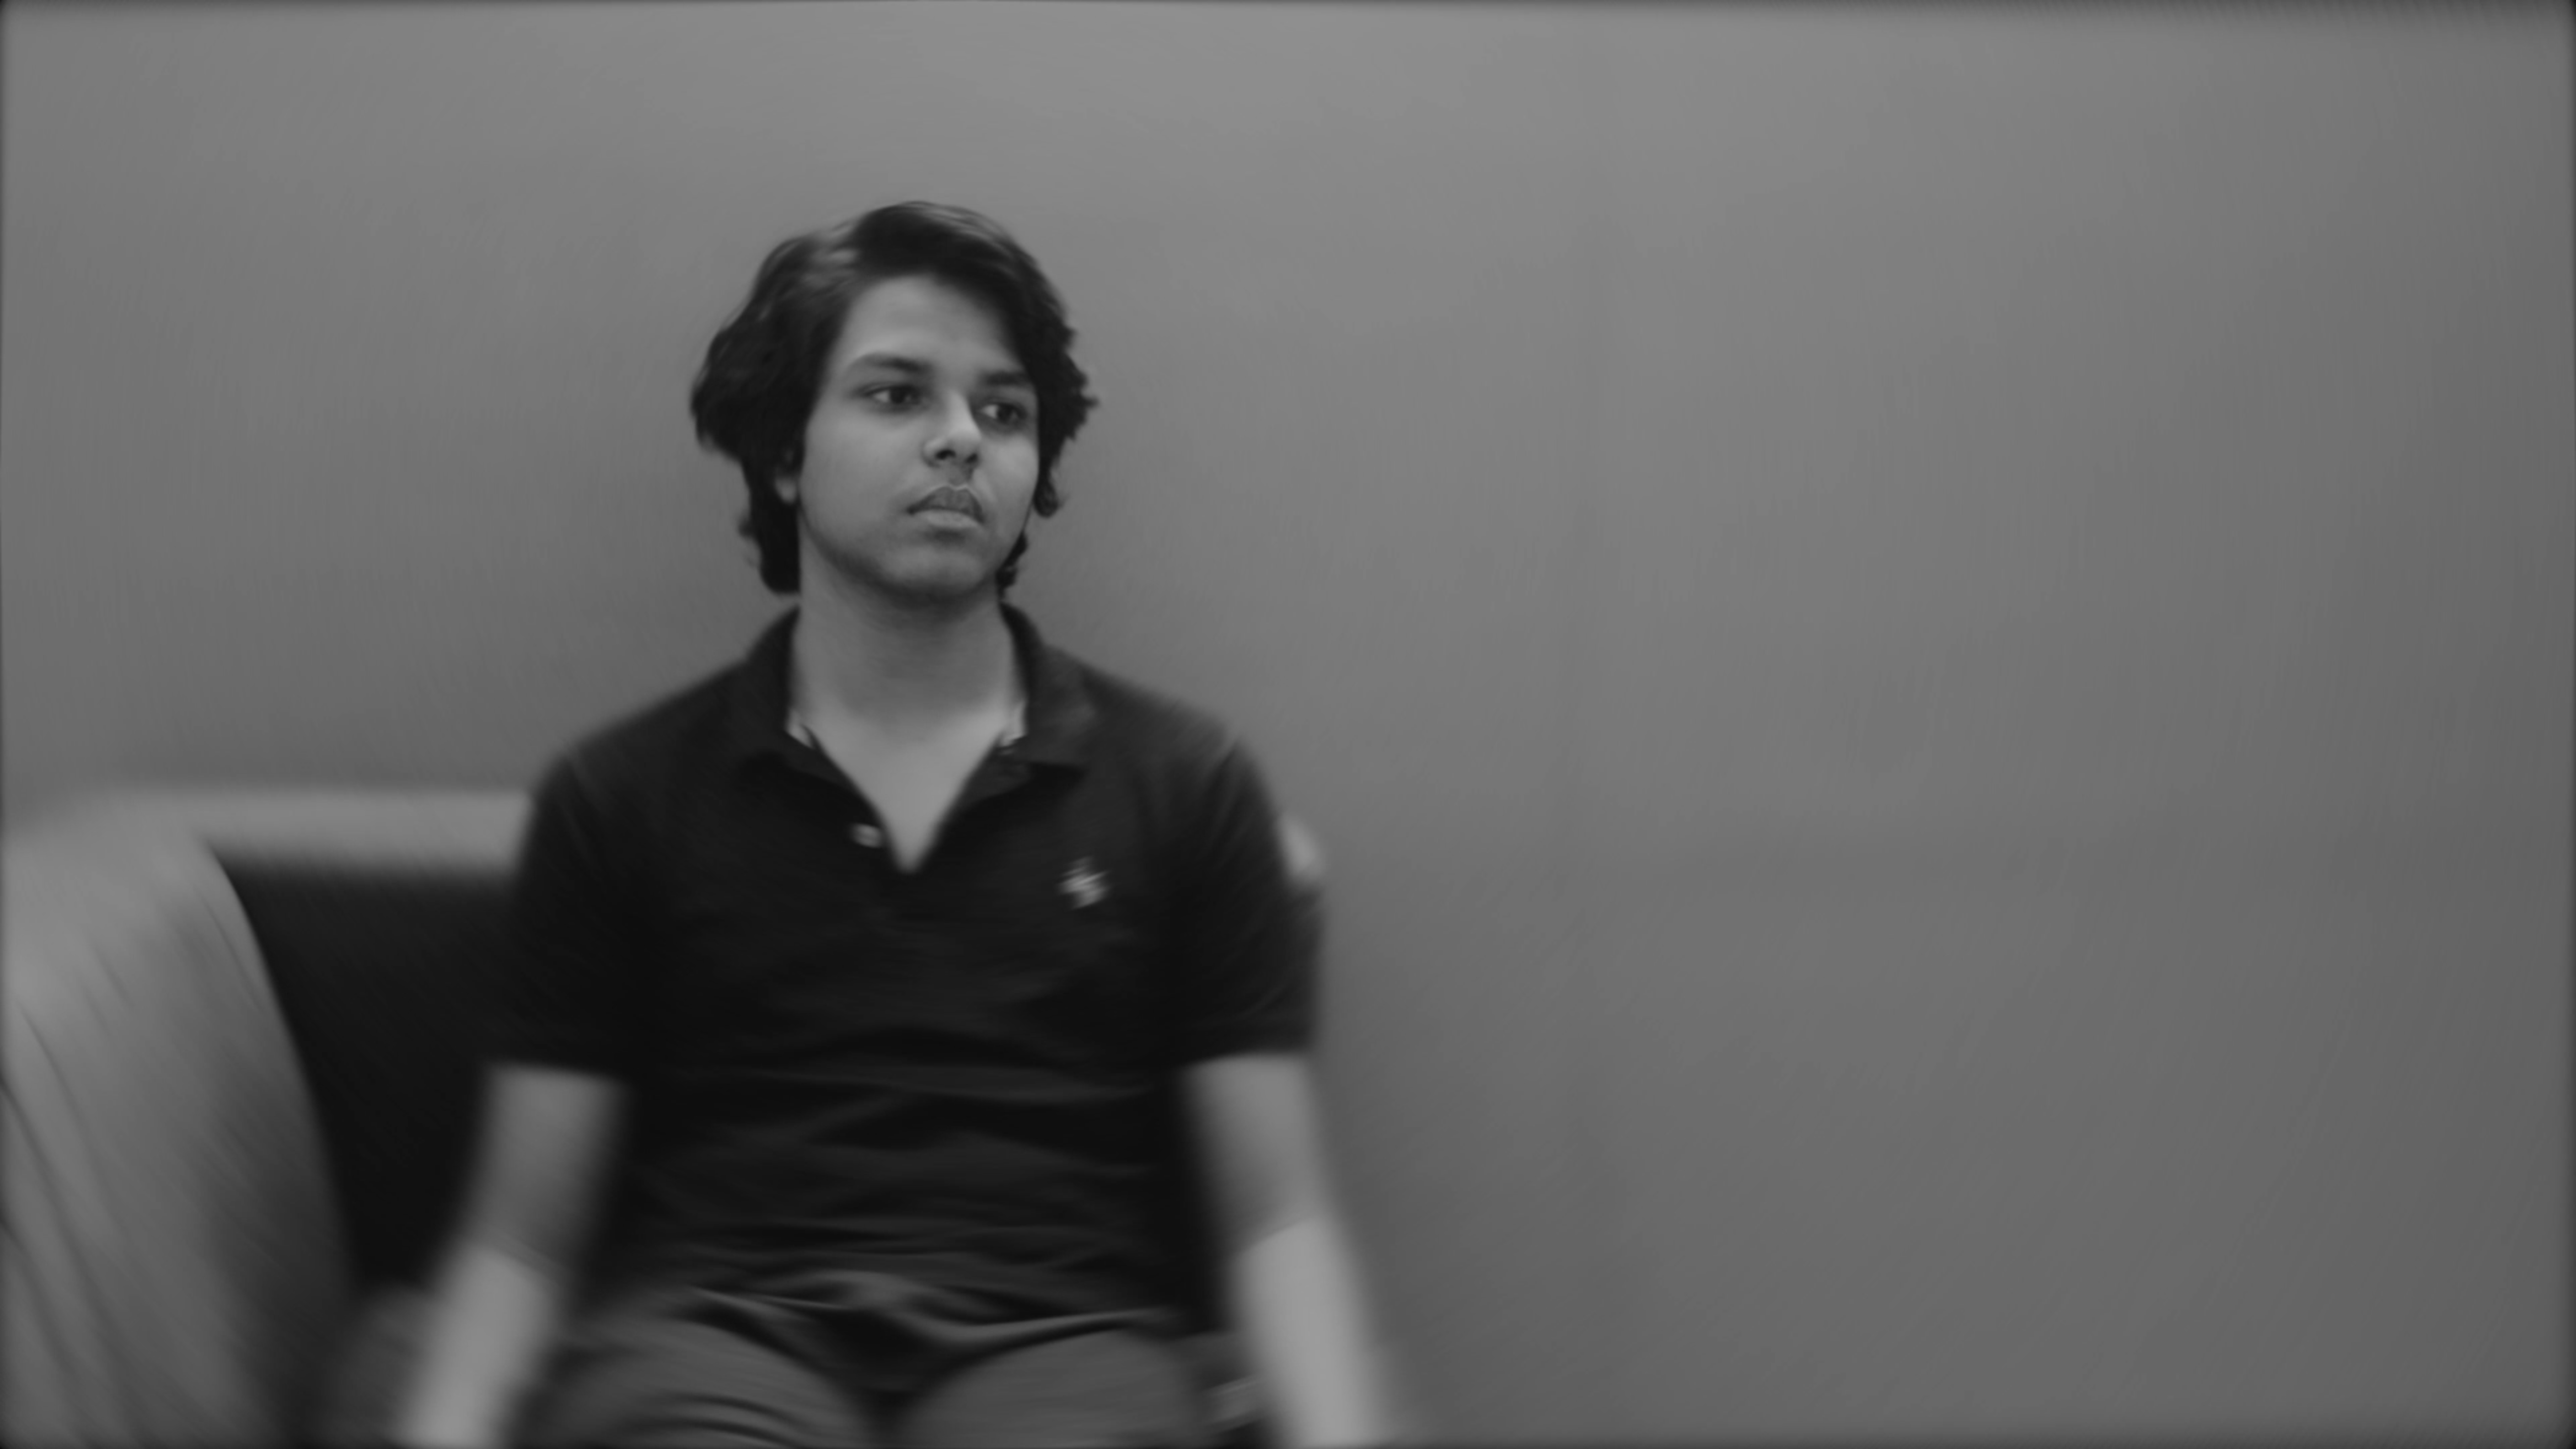 Still images from the short film distorted showing a person sitting on the couch like a statue.